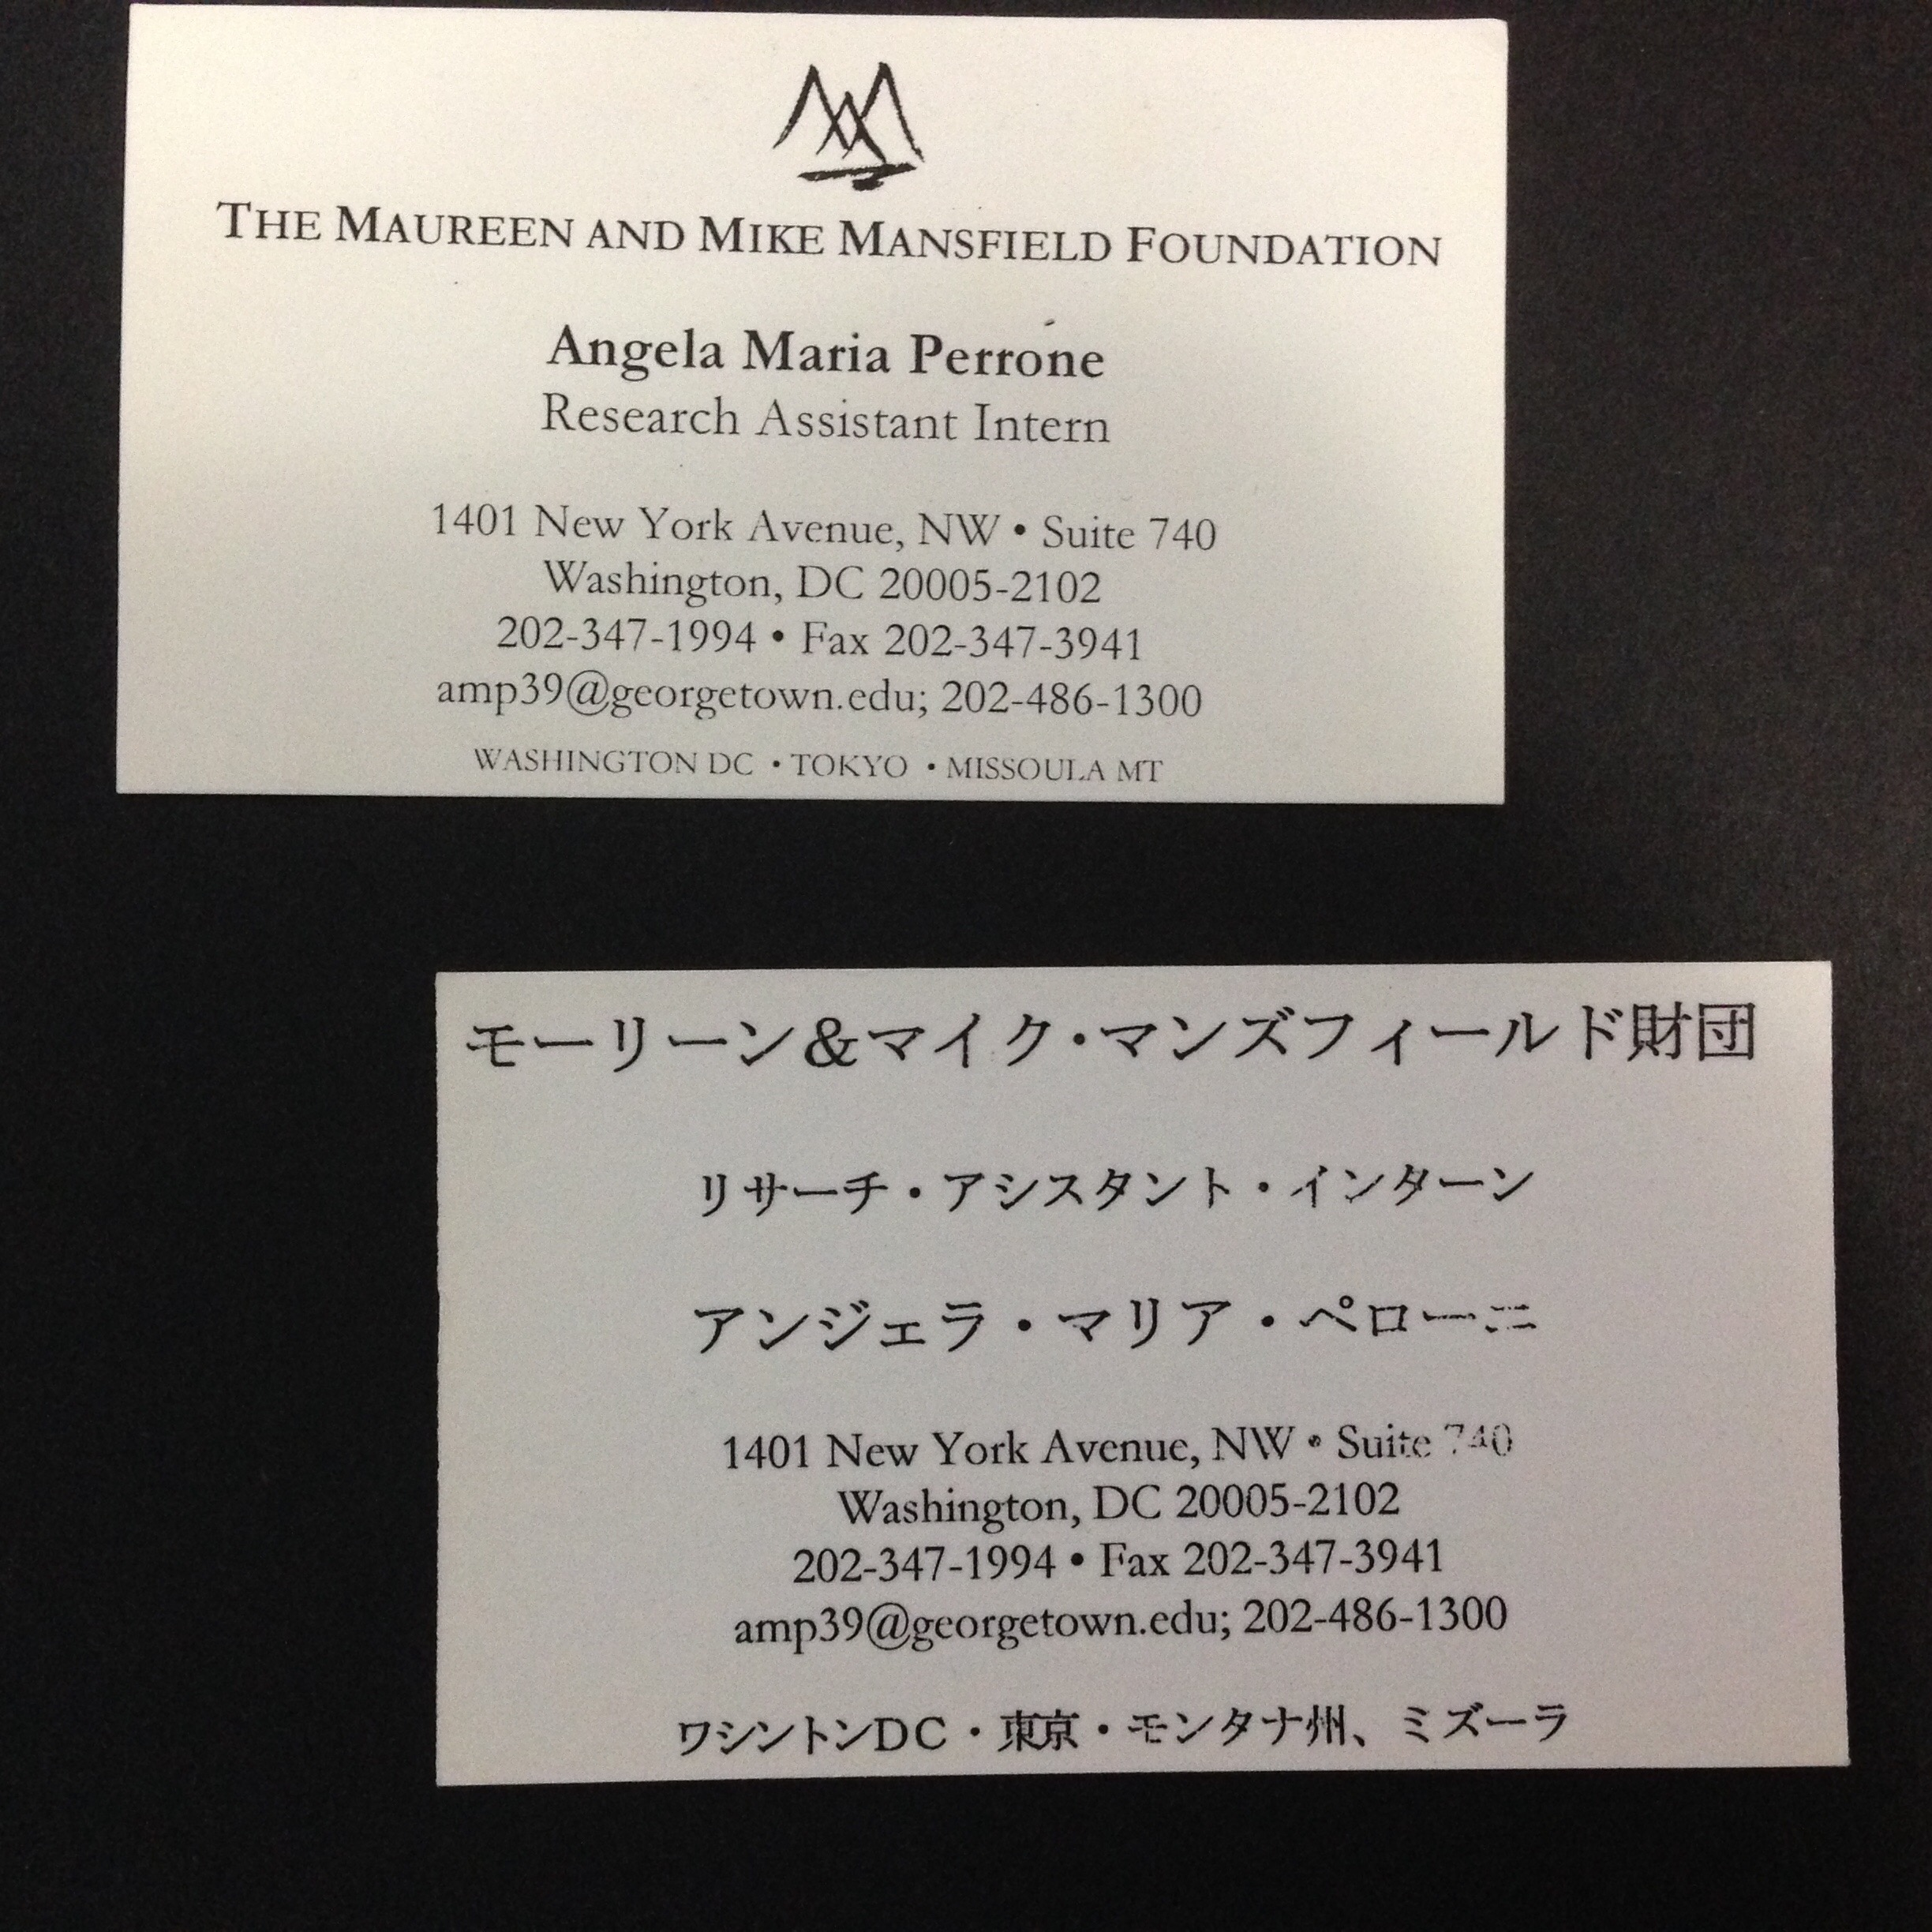 Taking Care of Business - Cards - angela @ ITP